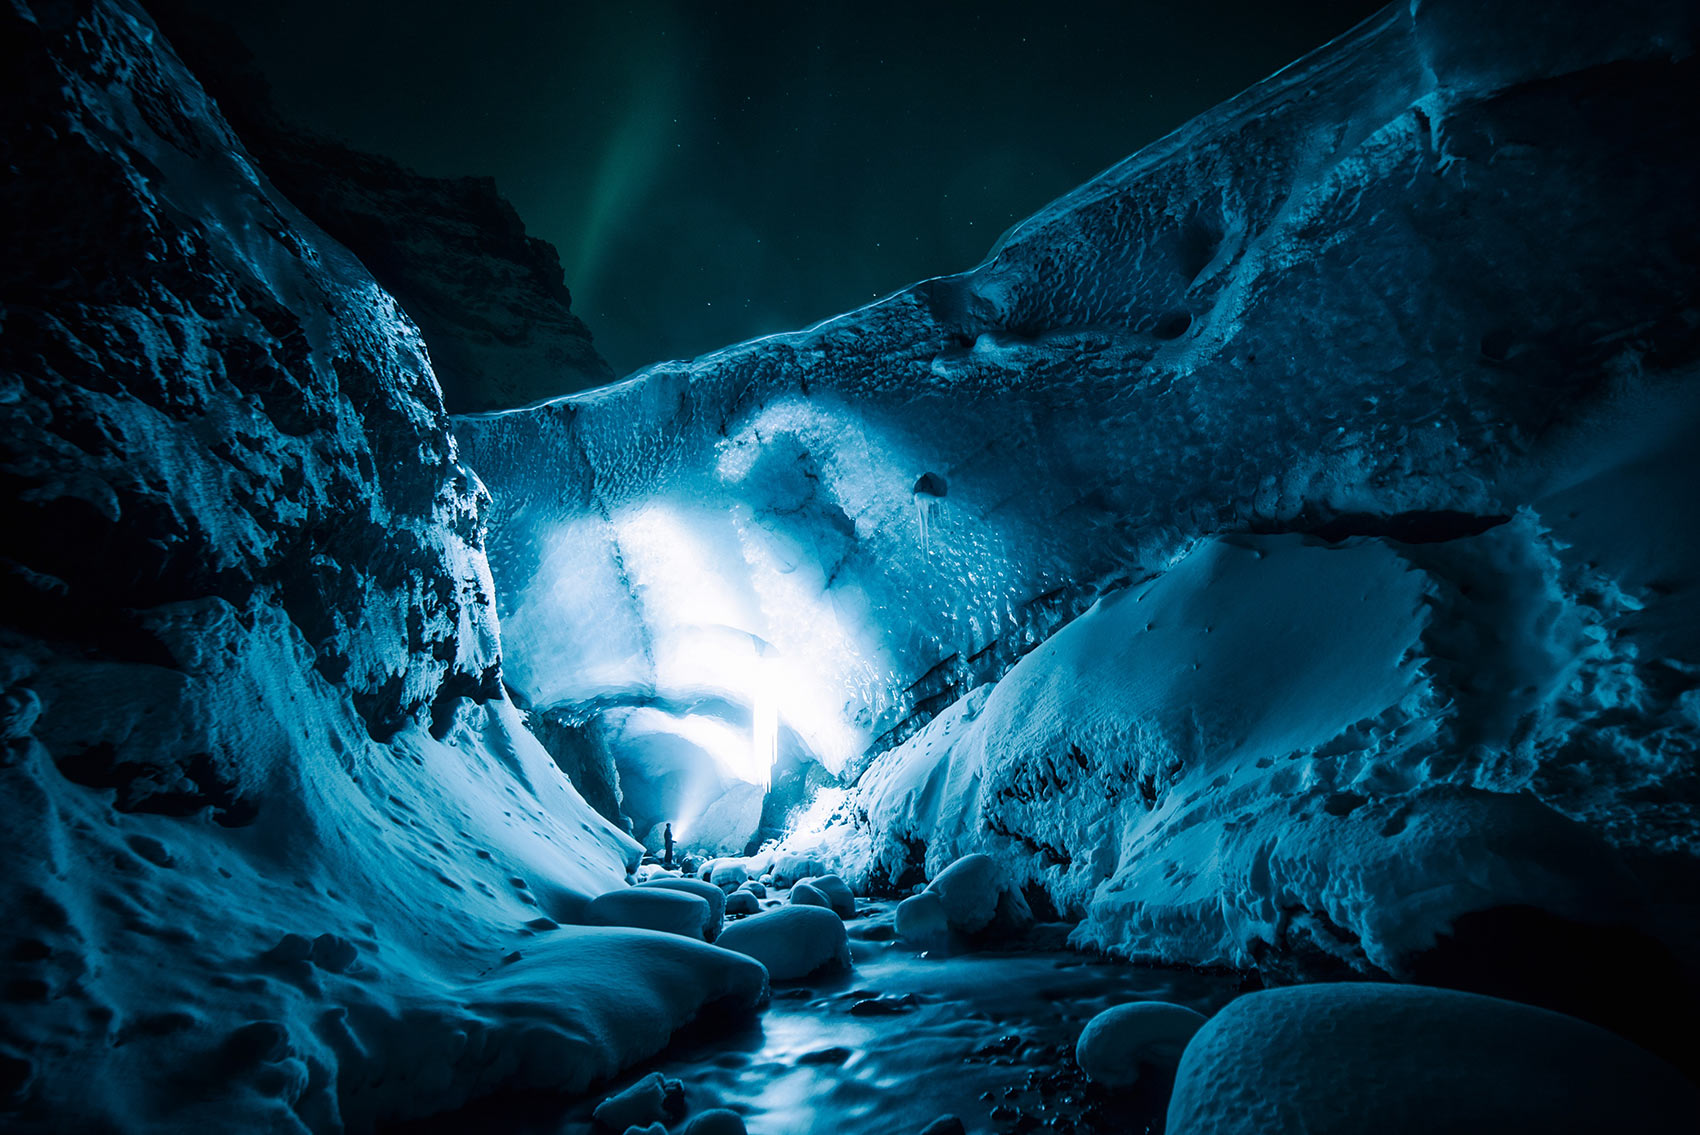 Explore the Great Ice Caverns